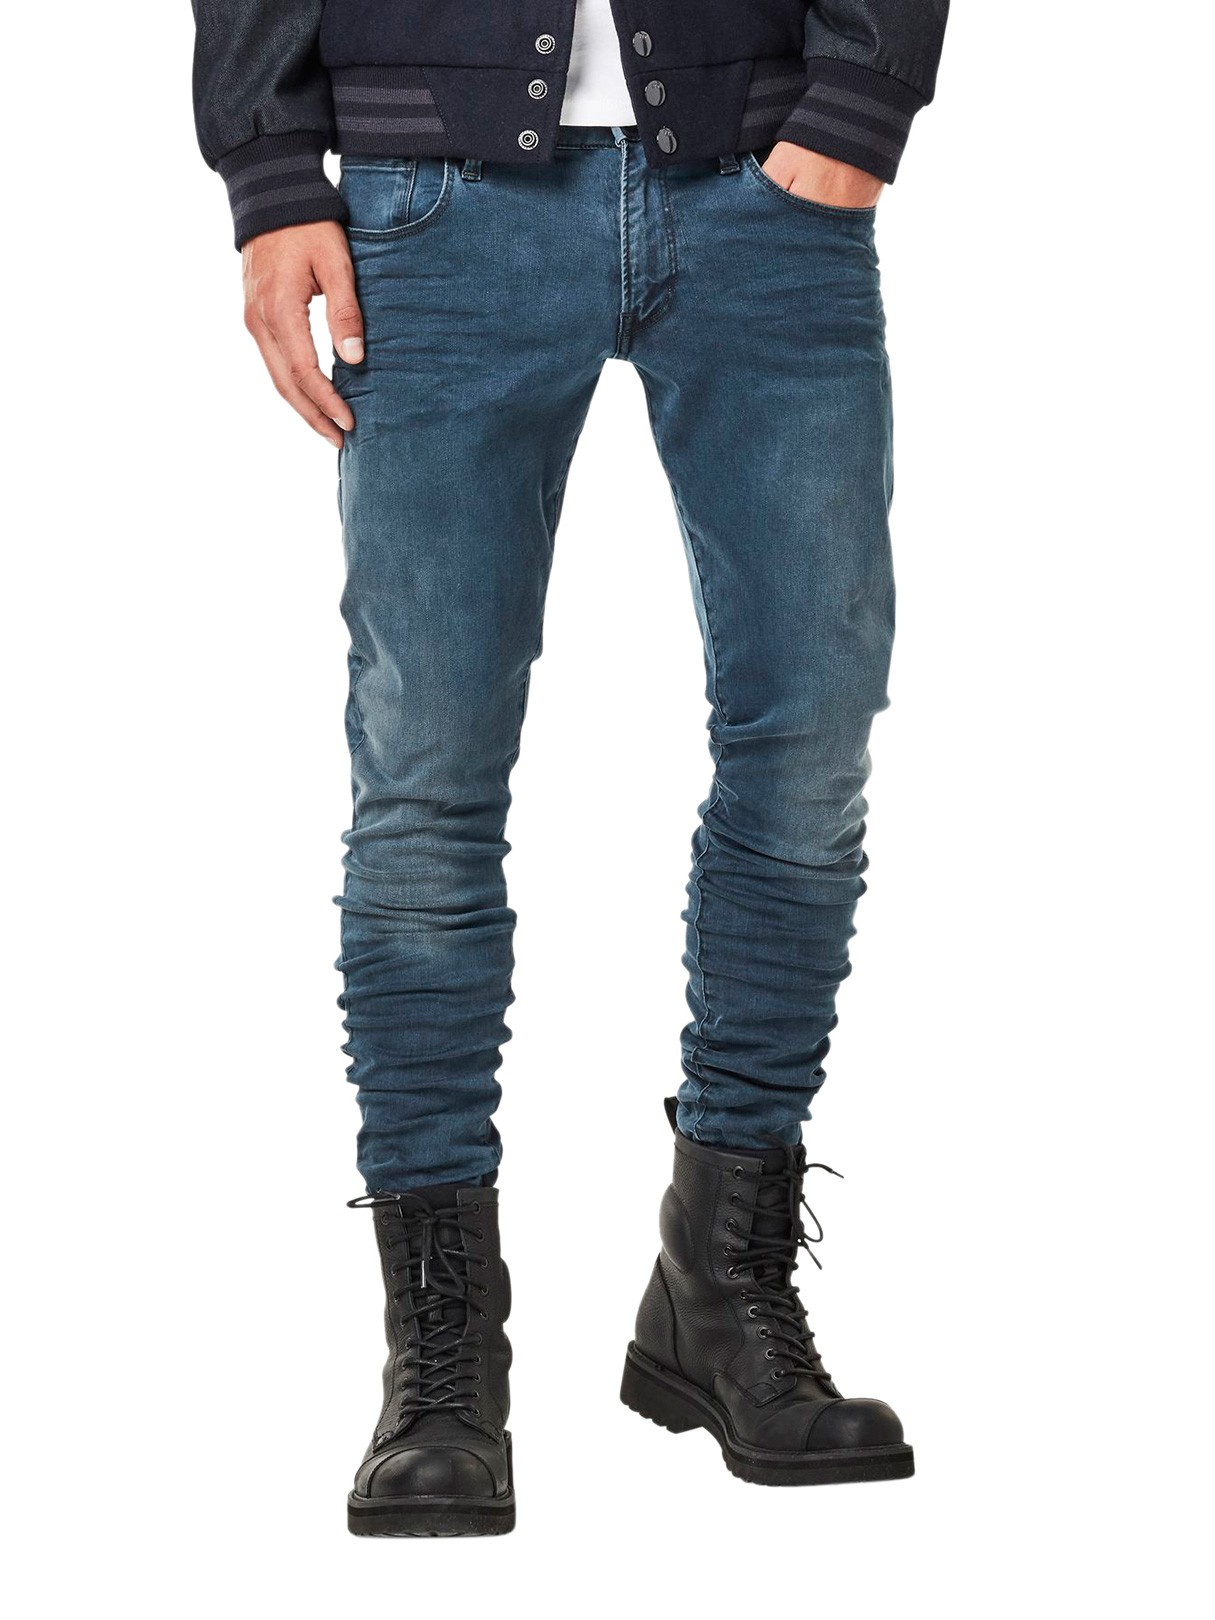 Mens 3301 Deconstructed Super Slim Skinny Jeans G-Star Outlet Limited Edition Clearance Brand New Unisex XDRbqJ